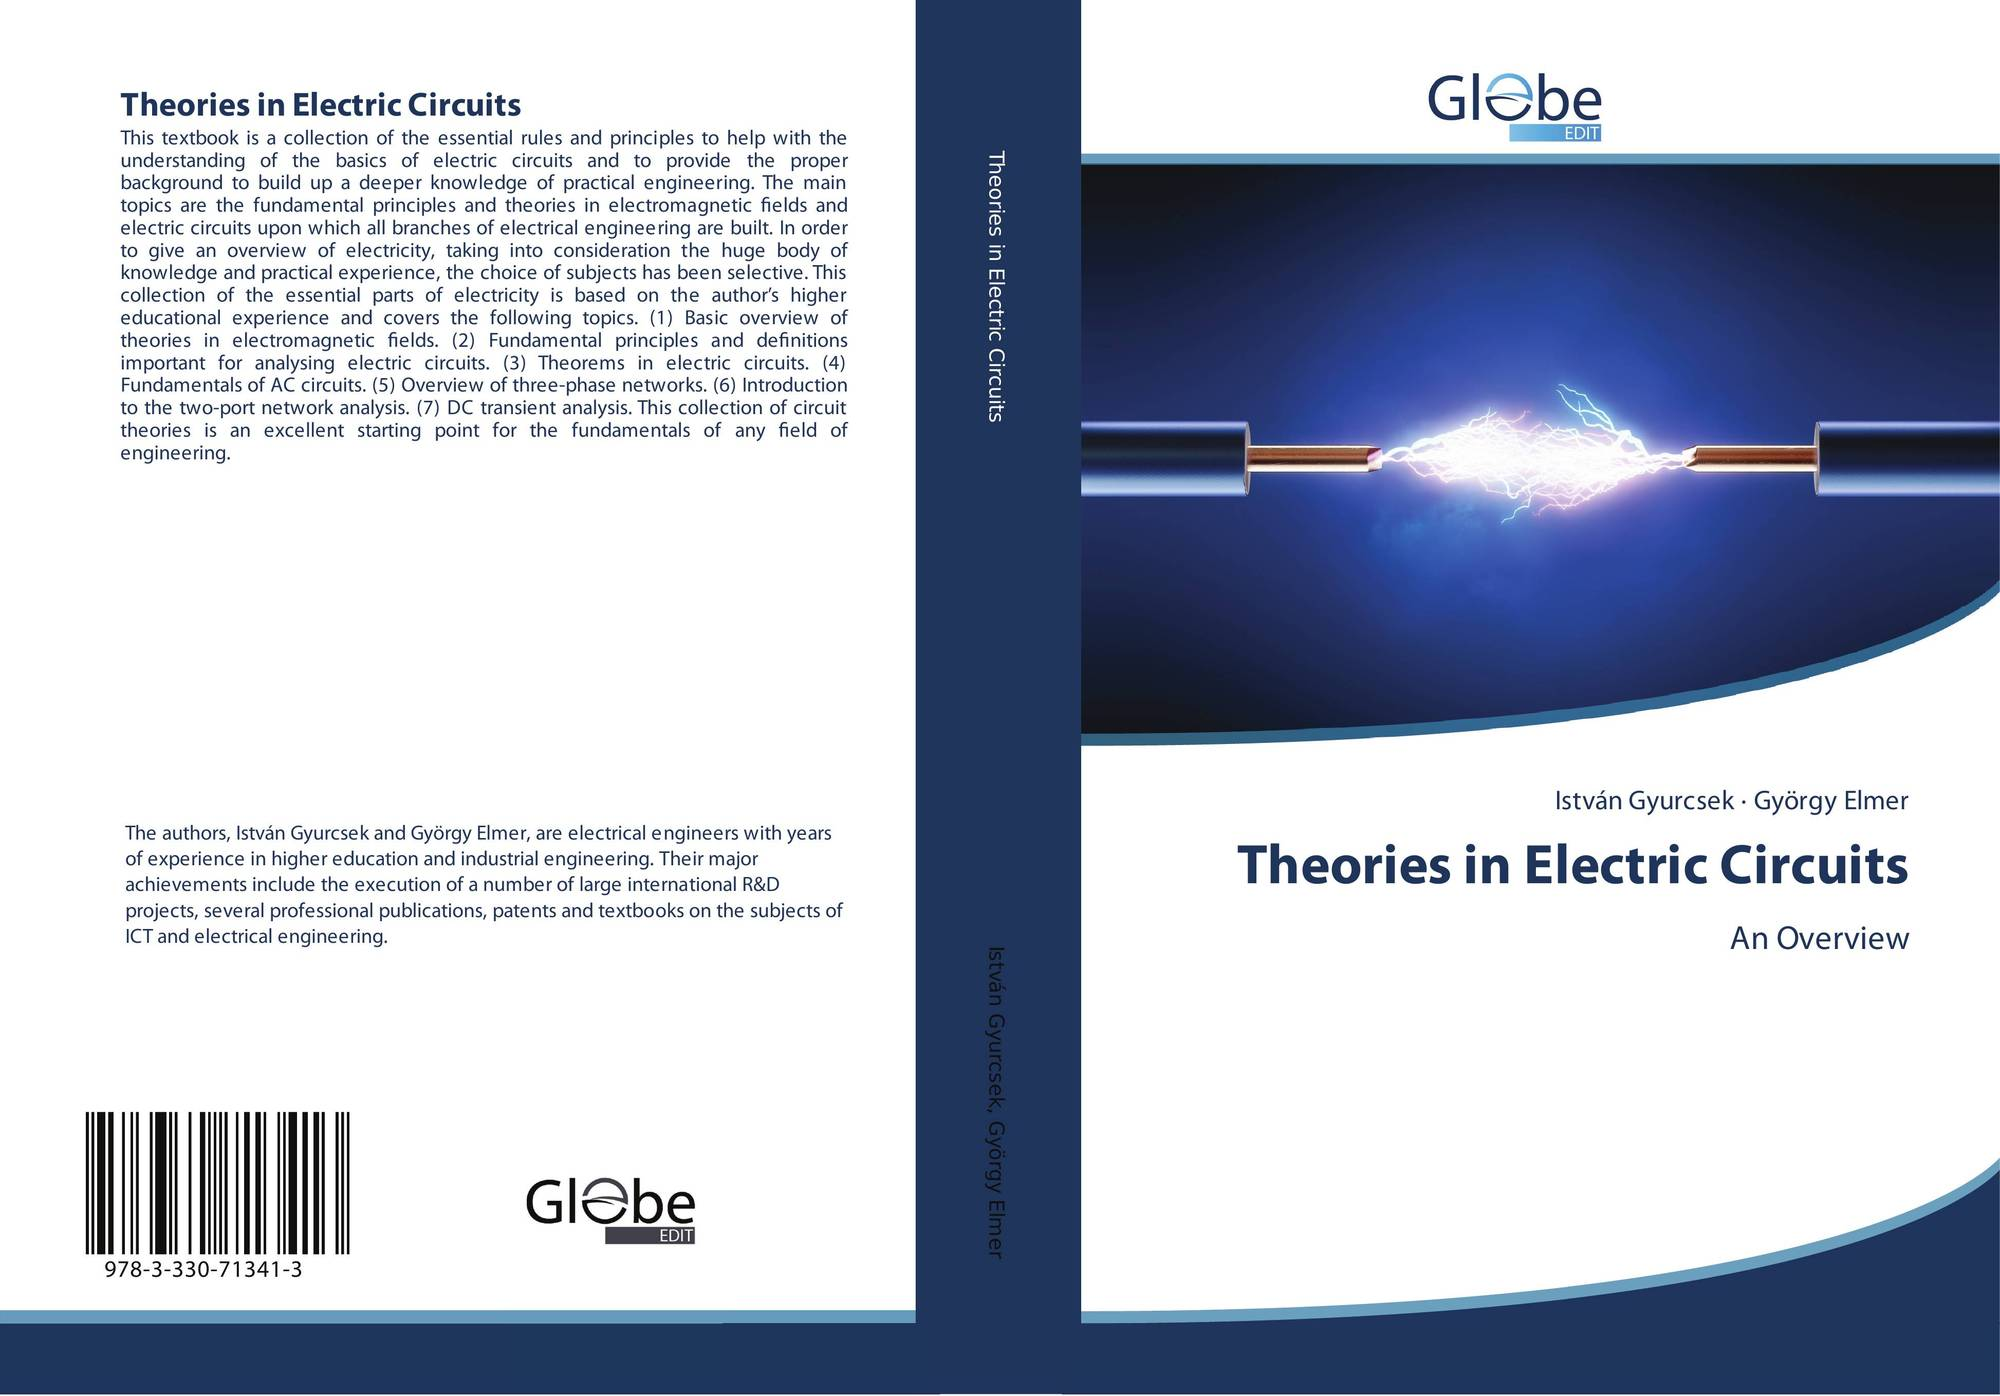 Theories In Electric Circuits 978 3 330 71341 3330713410 Electriccircuits 9783330713413